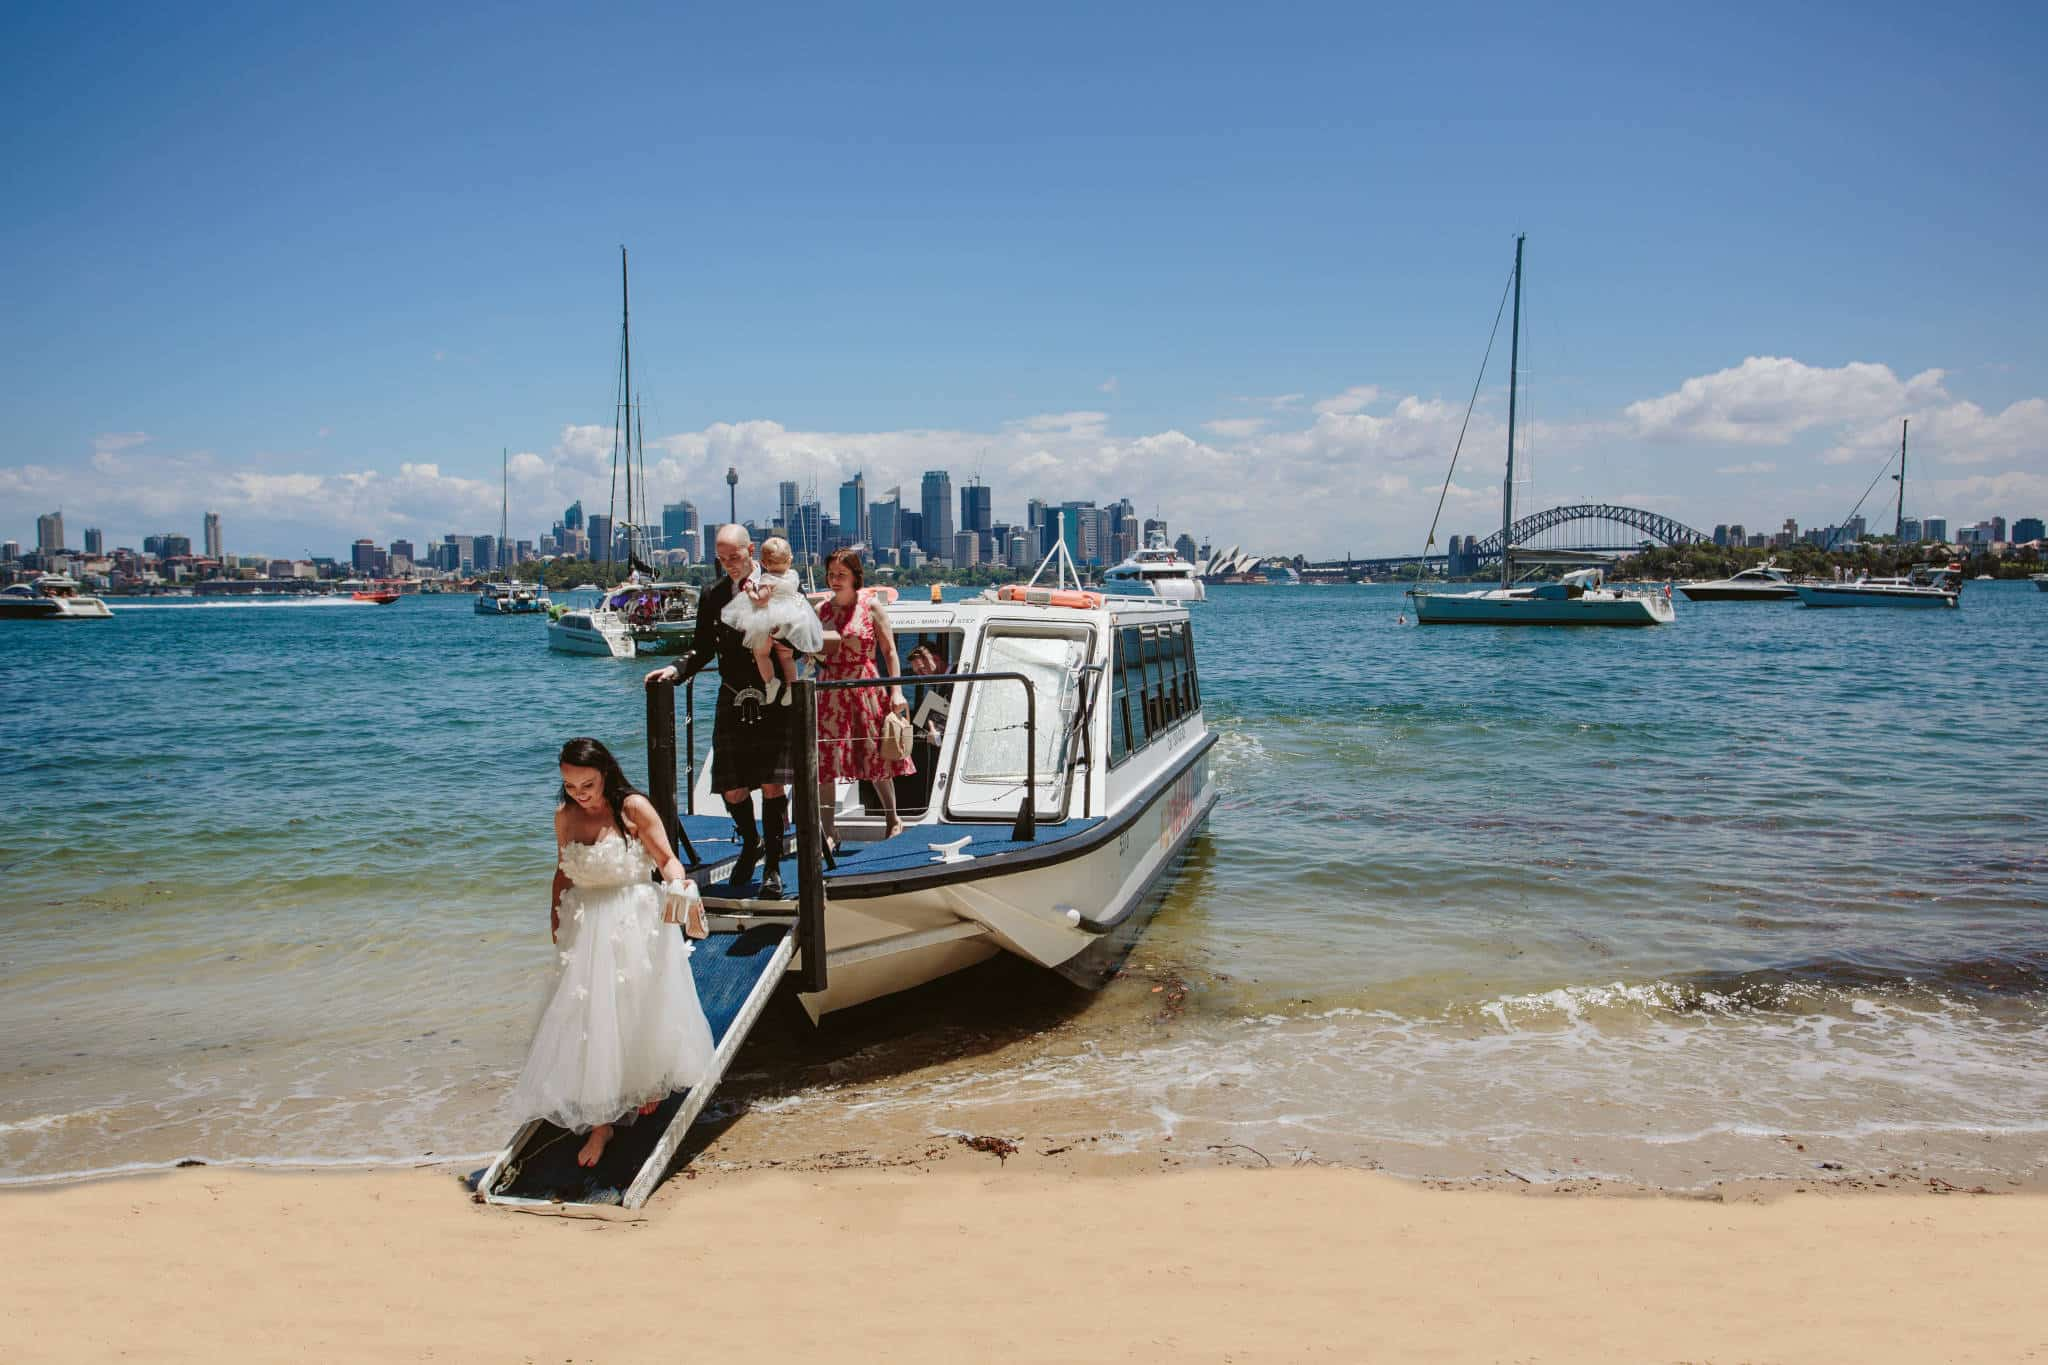 Kiss Me Quick Beach Wedding Landing - Stephen Lee Sydney Marriage Celebrant